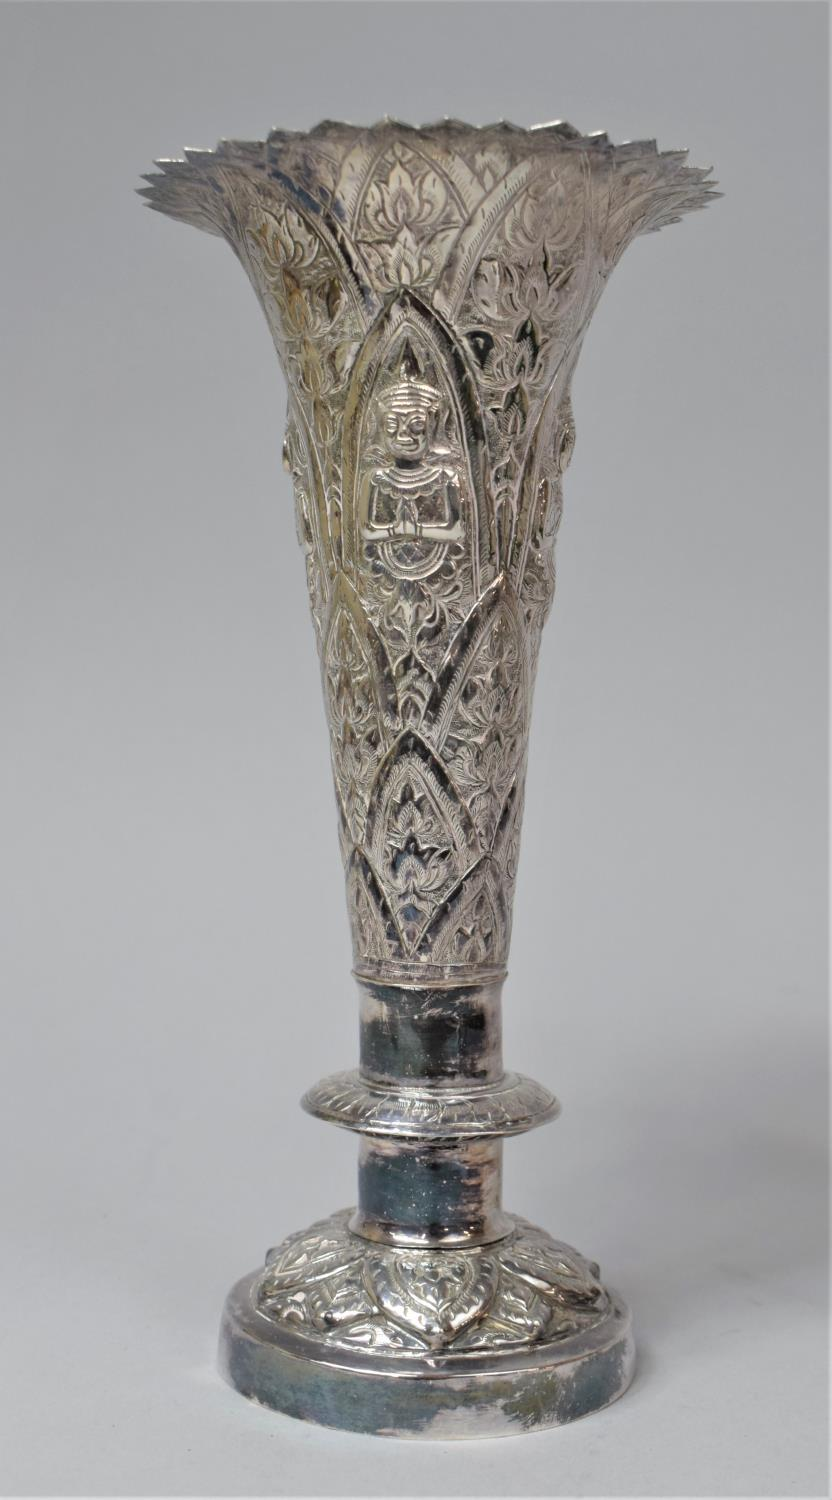 A Set of Three Indian Silver Trumpet Vases with Hand Hammered Repousse work, Depicting Namaste - Image 10 of 13